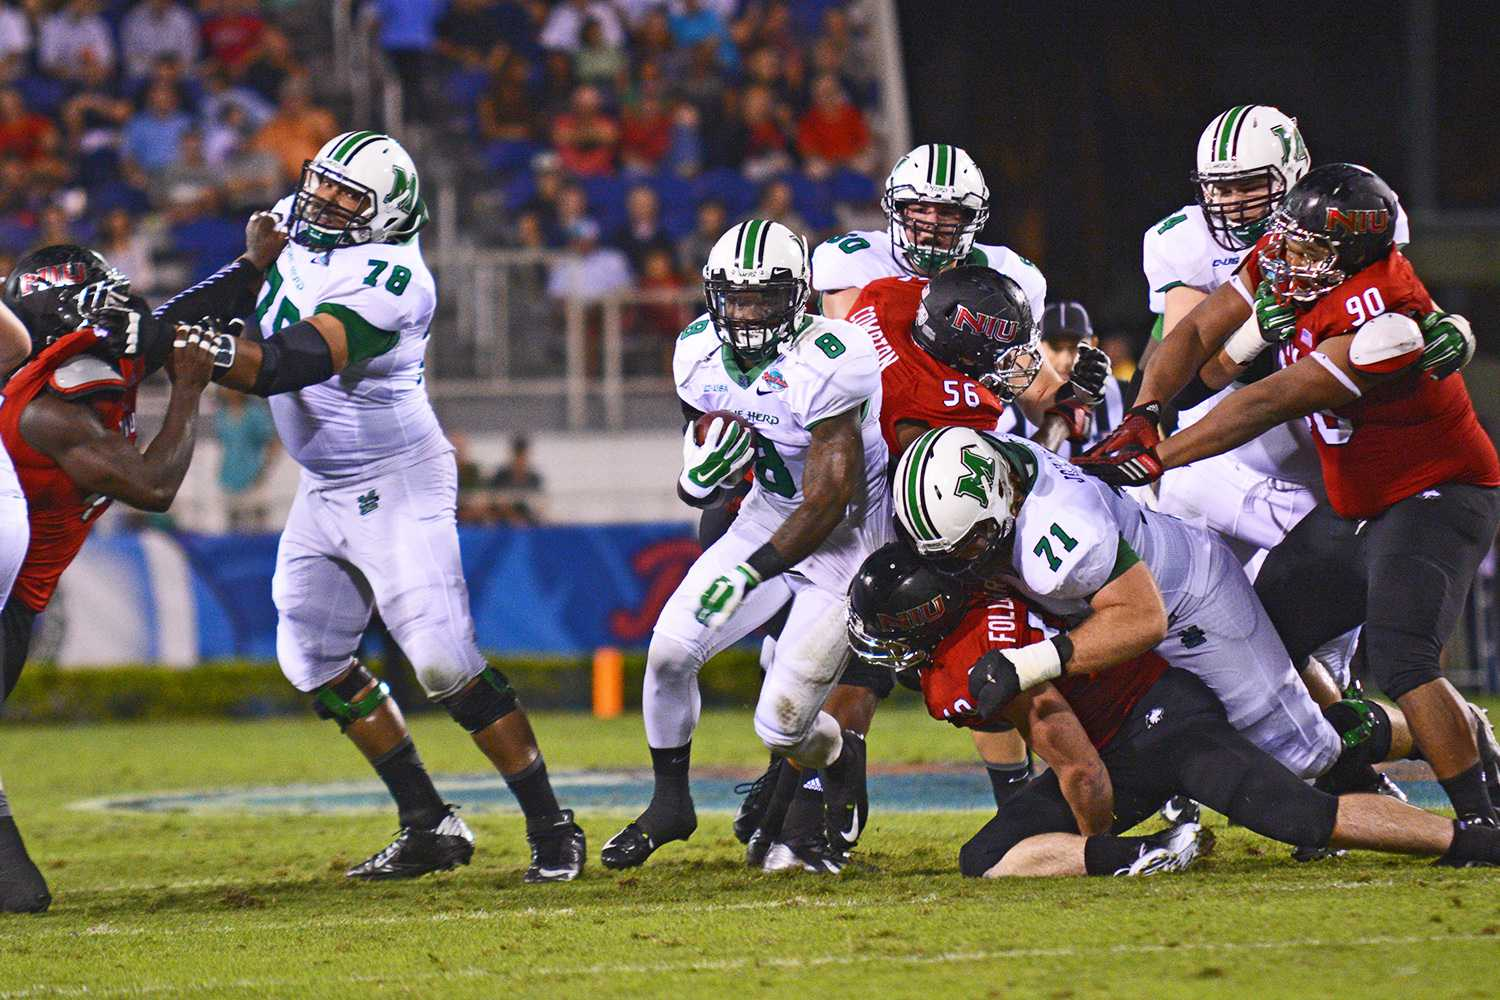 Marshall running back Remi Watson knifes through a gap for what became a 25-yard gain.